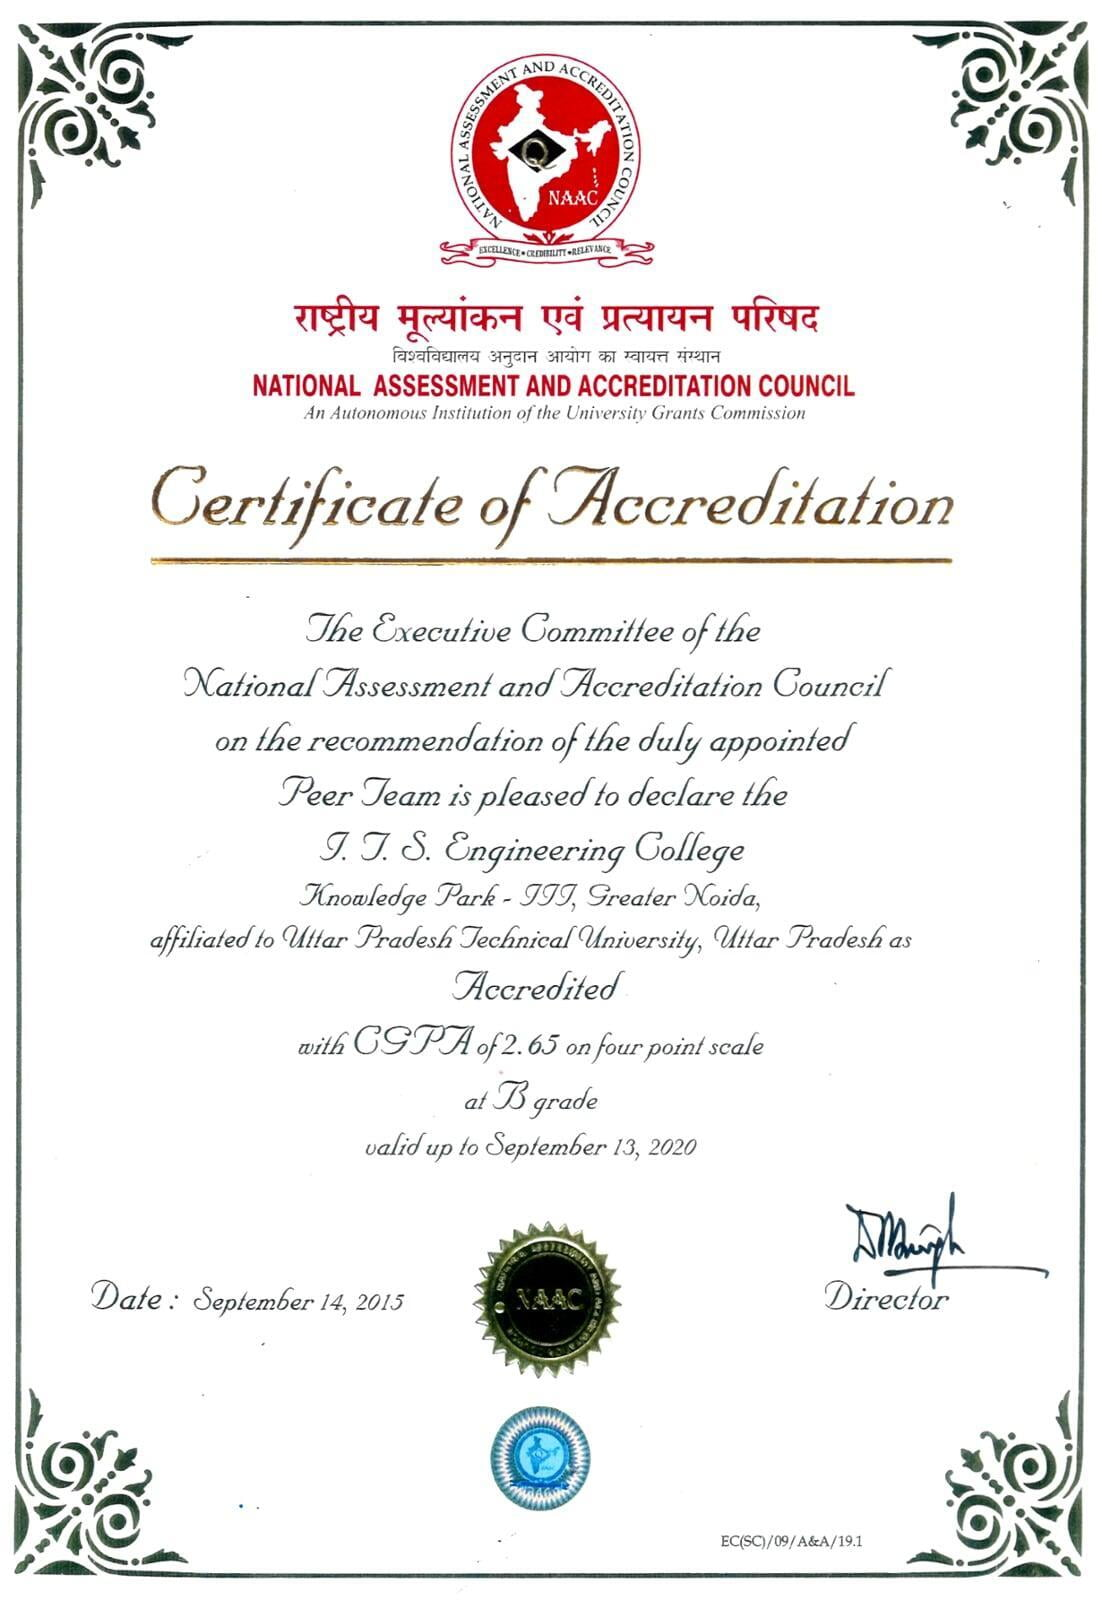 NAAC Certificate ITS Engineering College